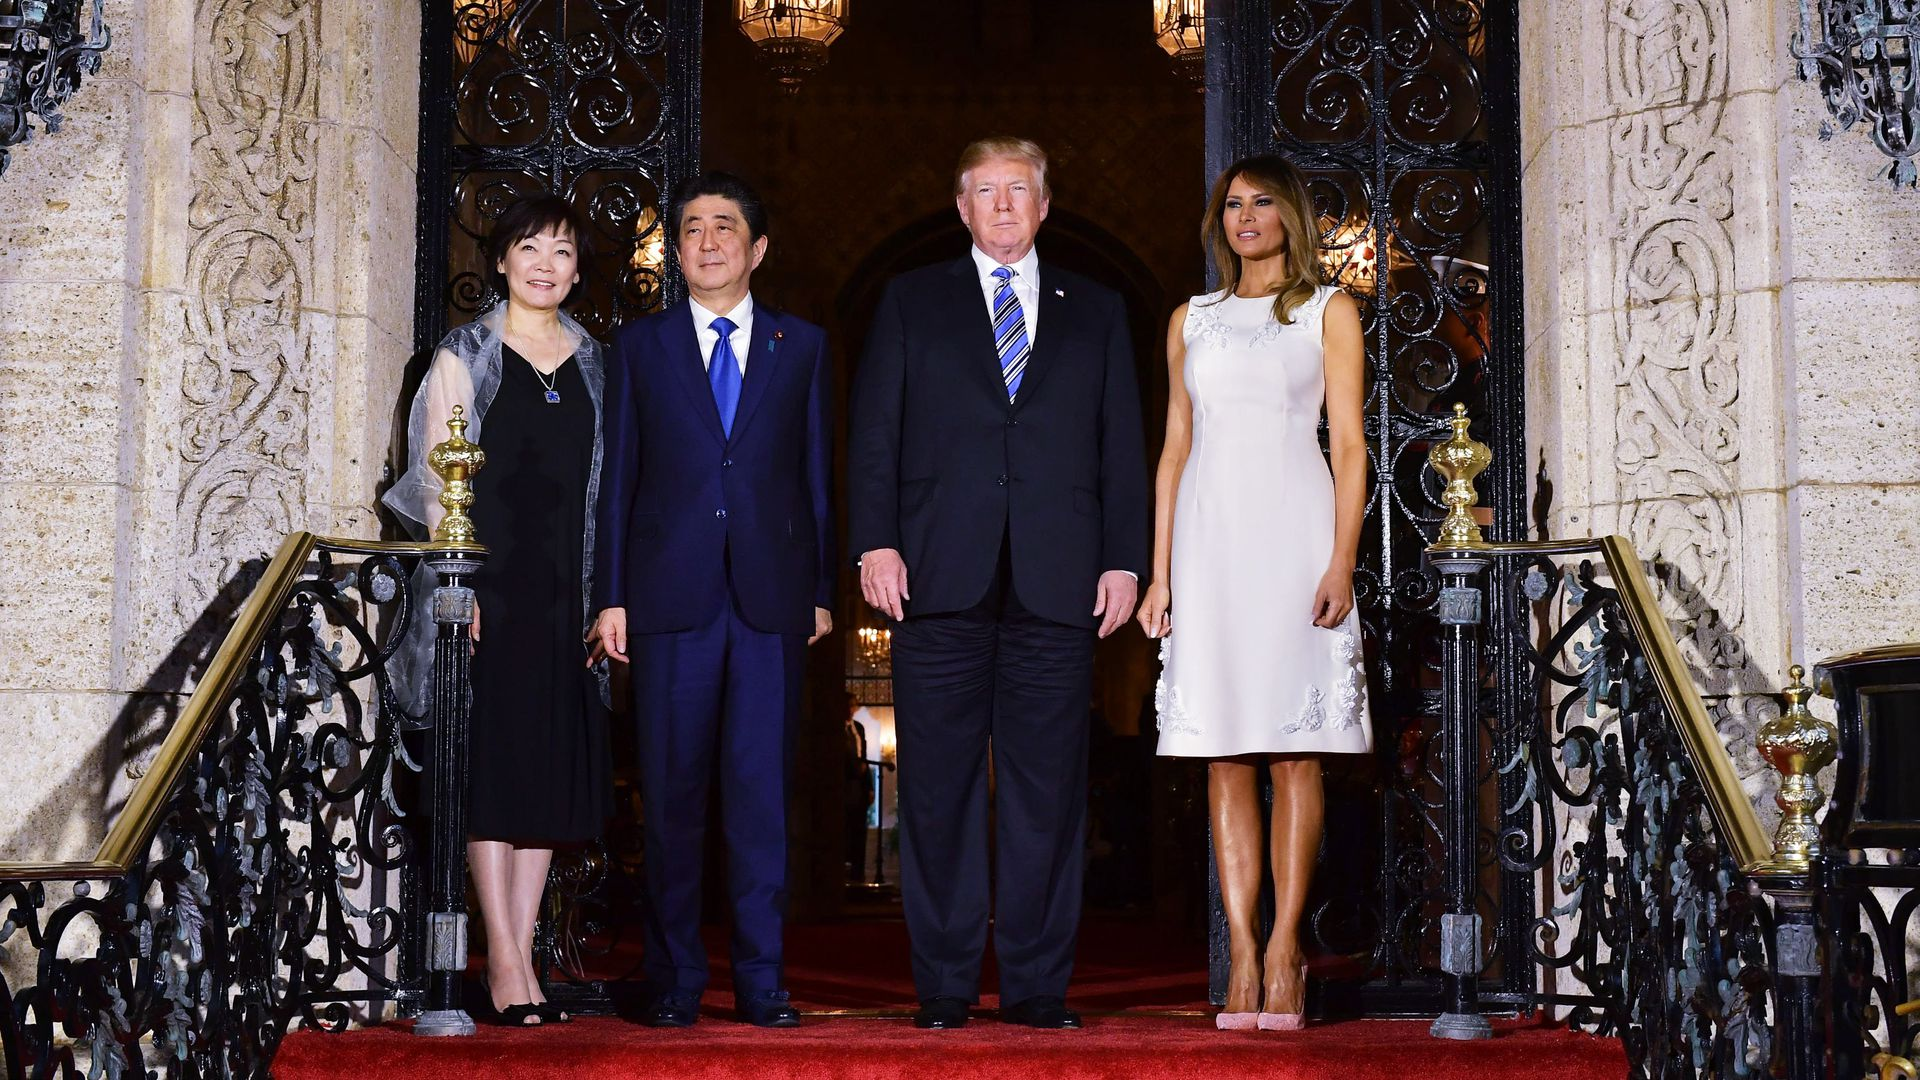 Donald Trump and Shnizo Abe on top of steps